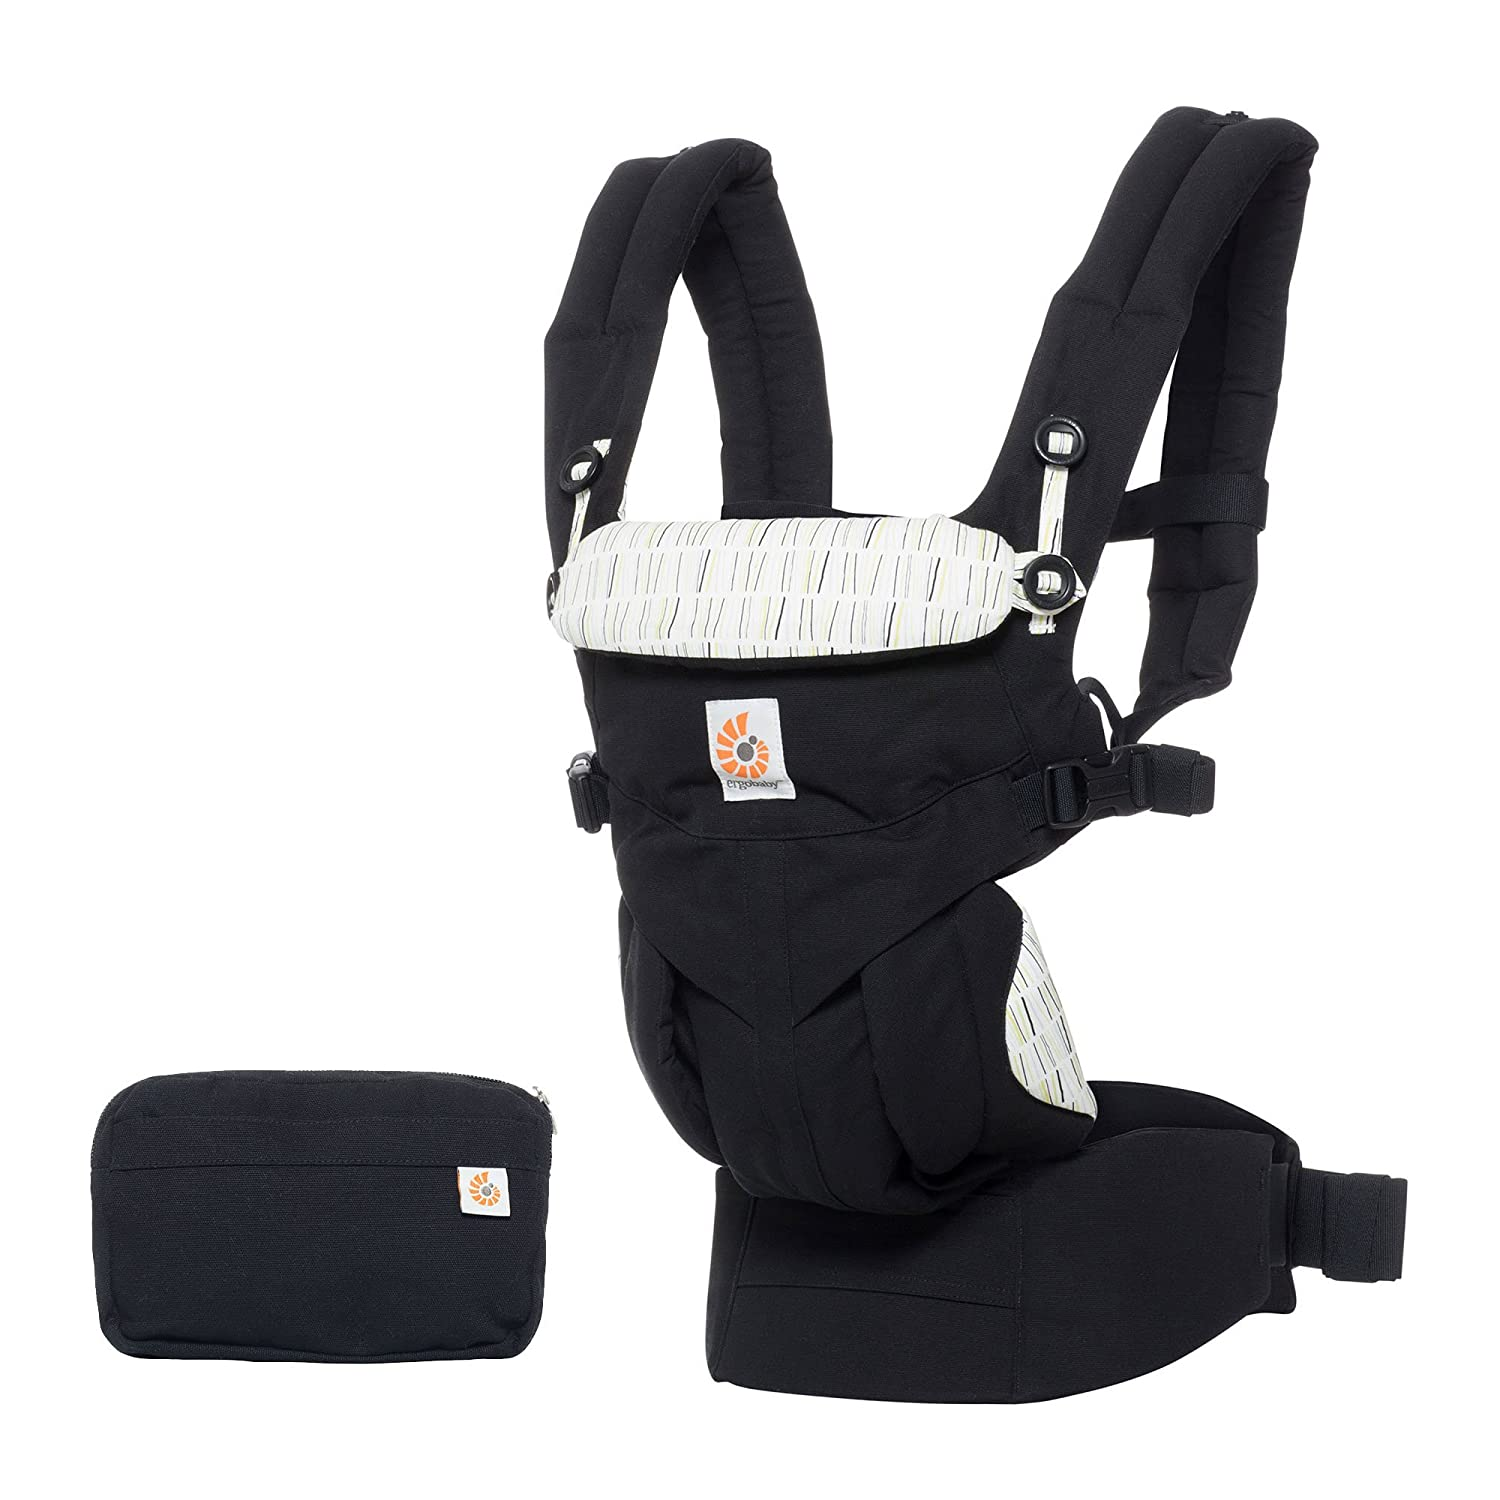 52c83618c21 Ergobaby Baby Carrier for Newborn to Toddler